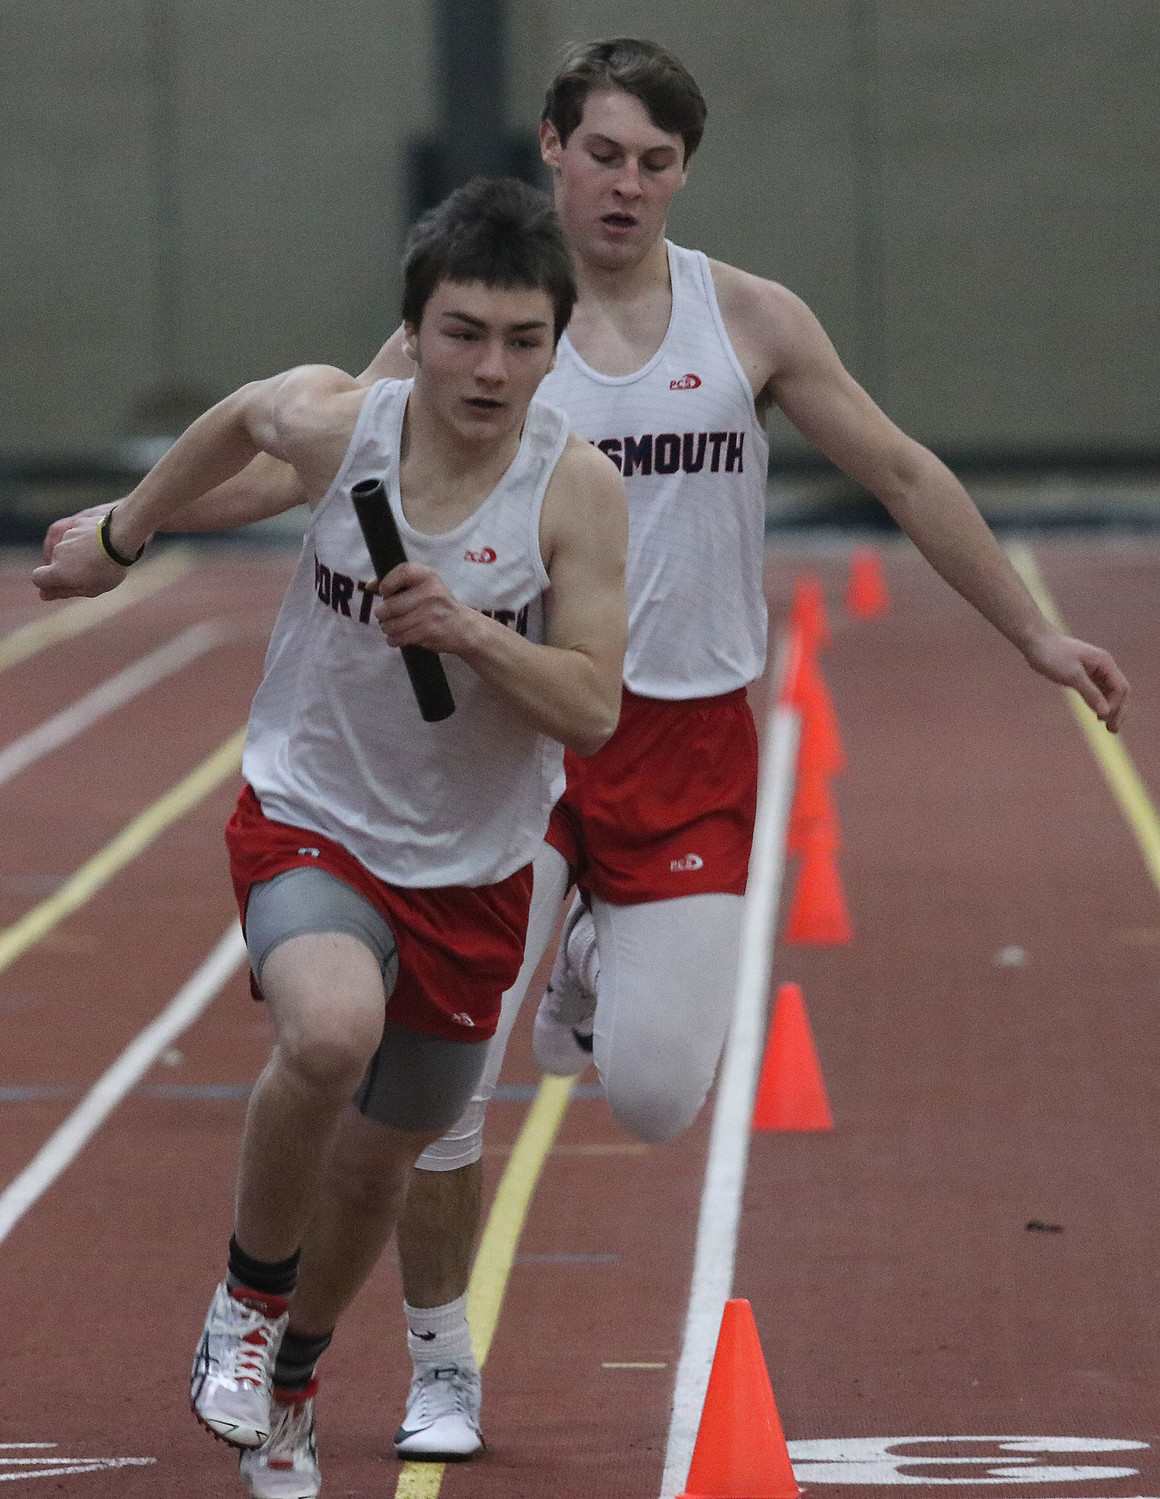 Brian Hamilton hands off to teammate Weller Littlefield during the 4x200-meter race.